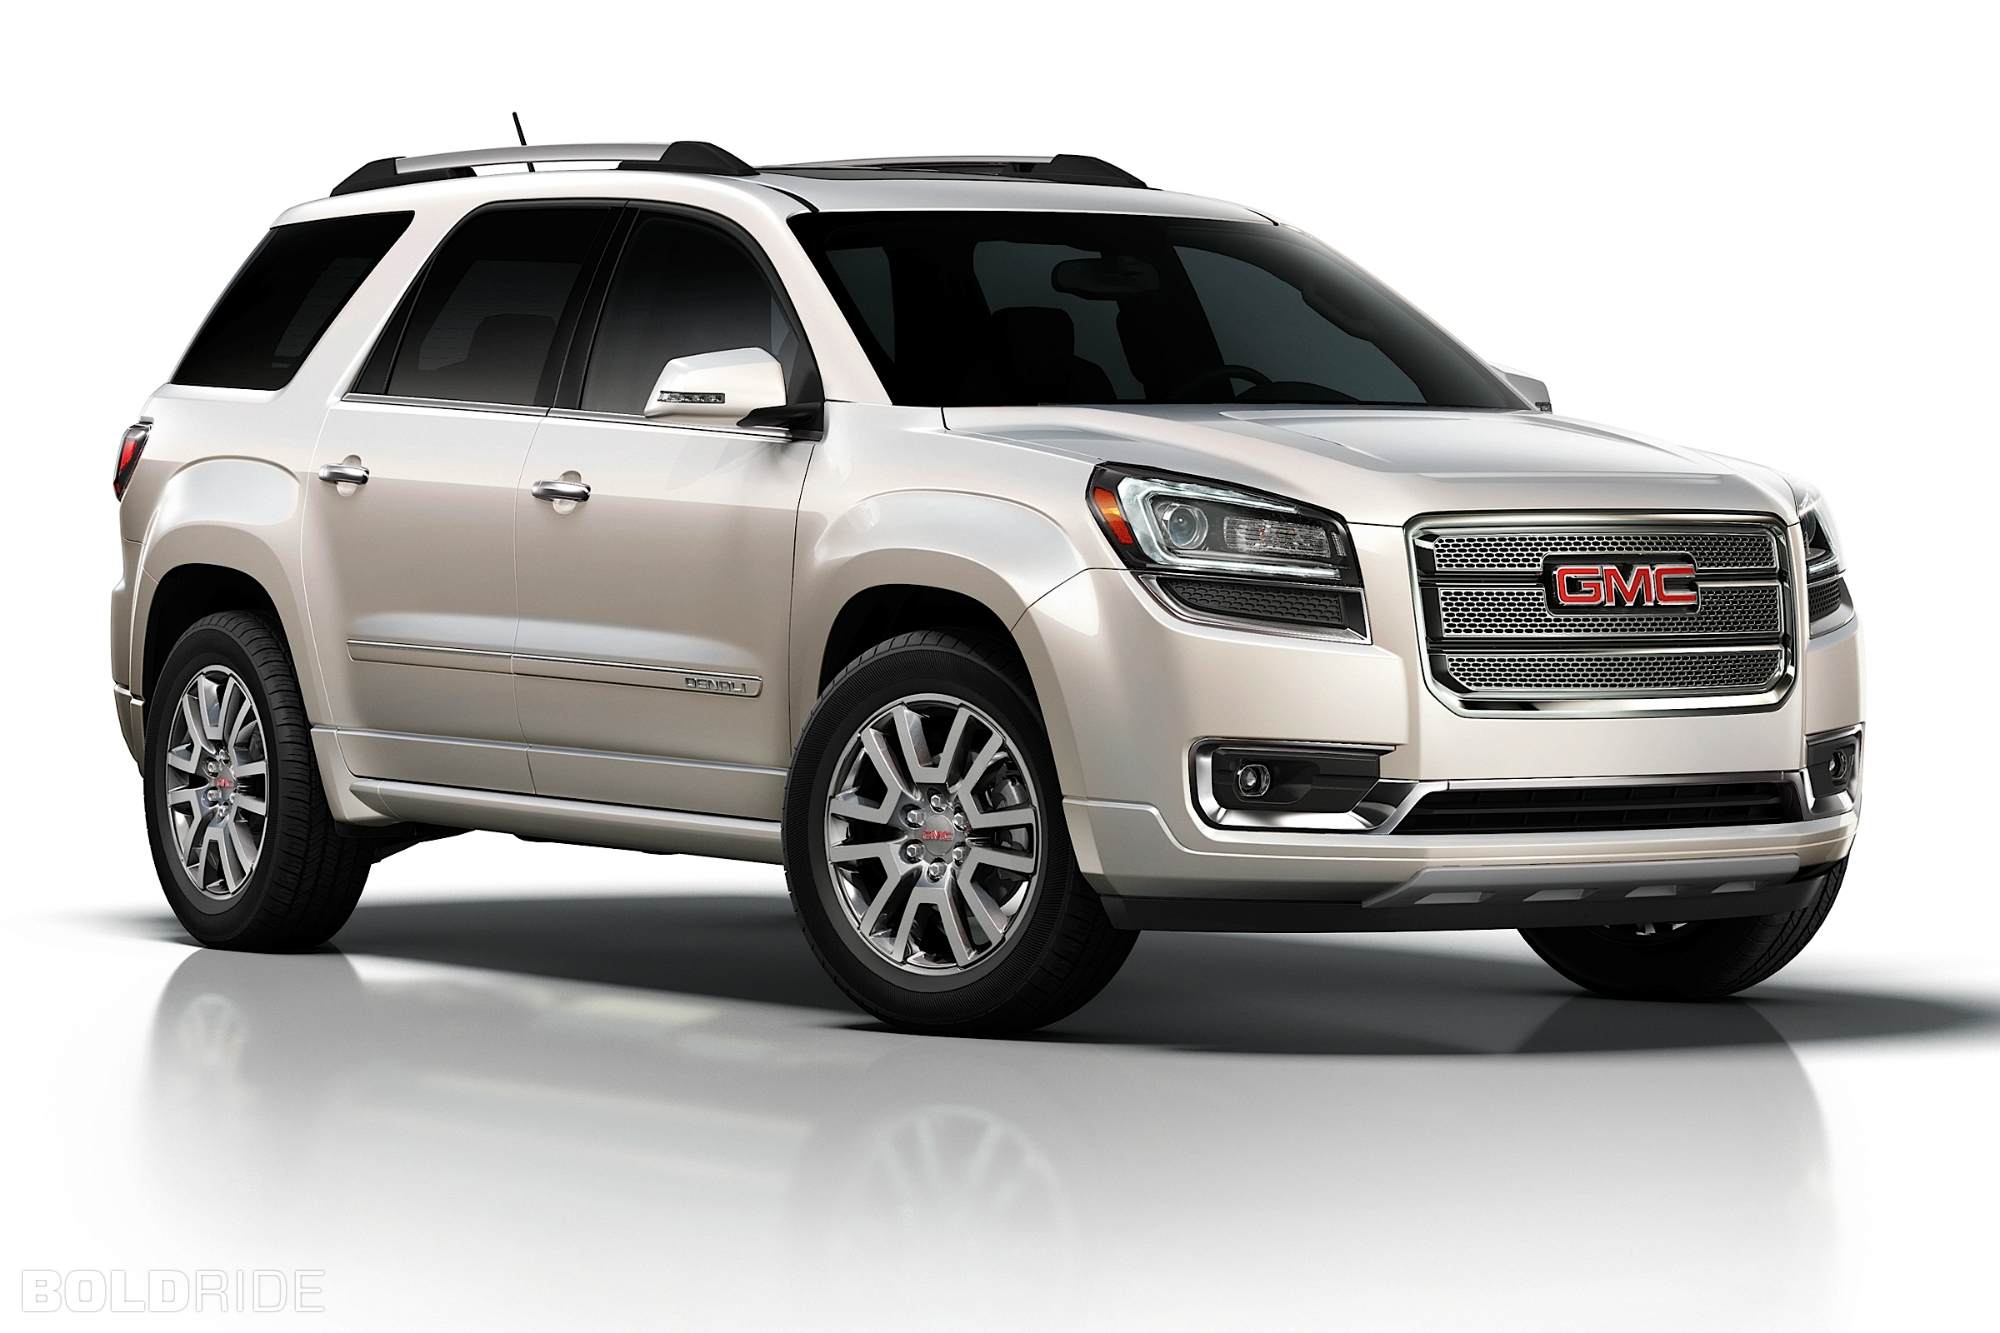 [DIAGRAM_5UK]  04D 2015 Gmc Acadia Fuse Diagram | Wiring Resources | 2015 Gmc Acadia Fuse Diagram |  | Wiring Resources